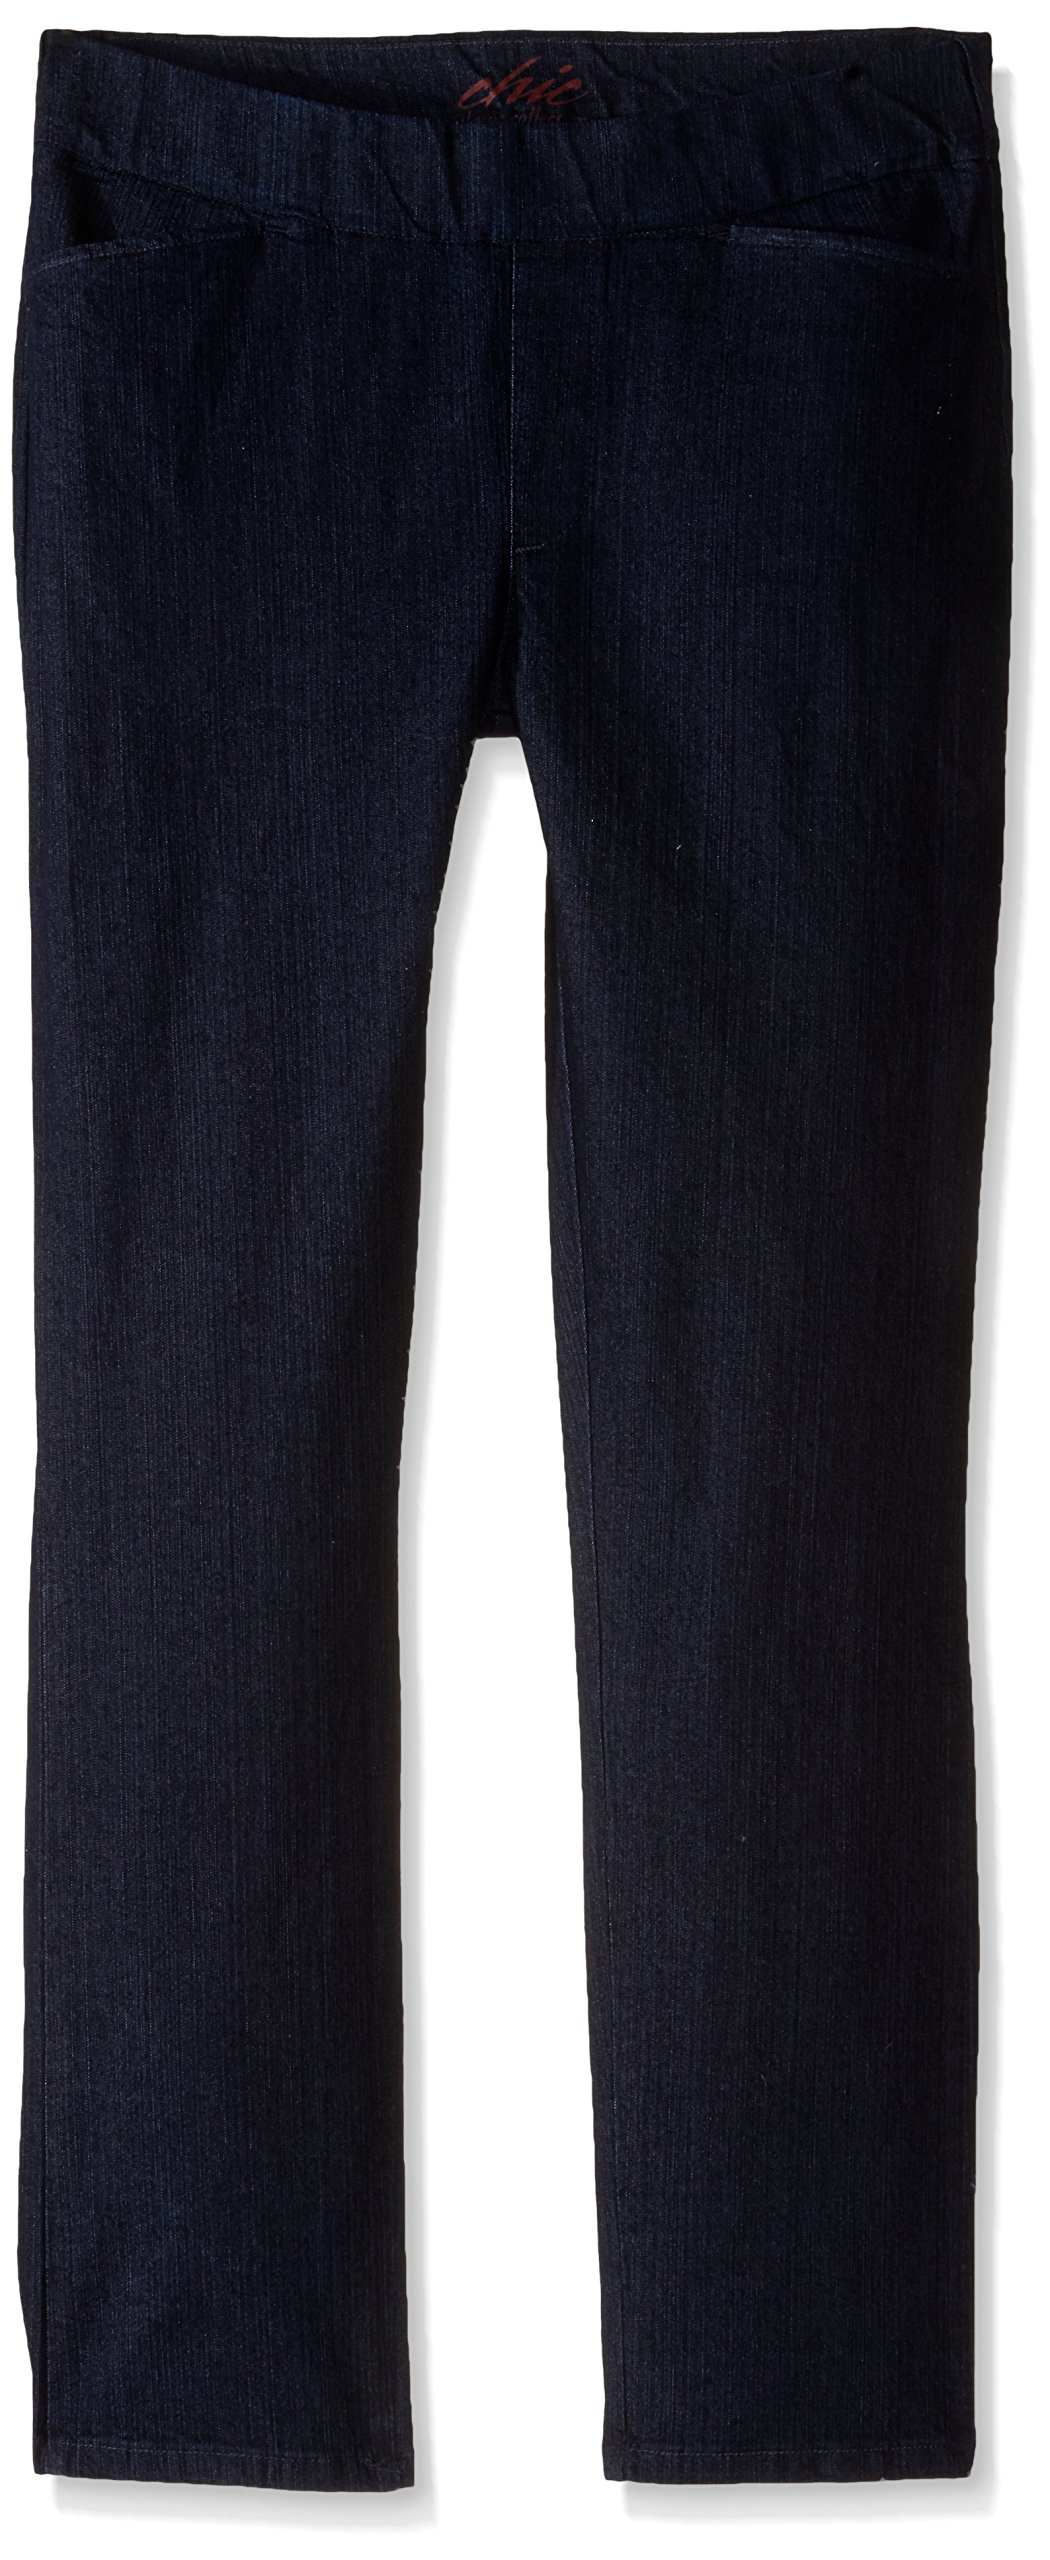 Chic Classic Collection Women's Easy Fit Elastic Waist Pull On Pant, Dark Shade, 16 Petite